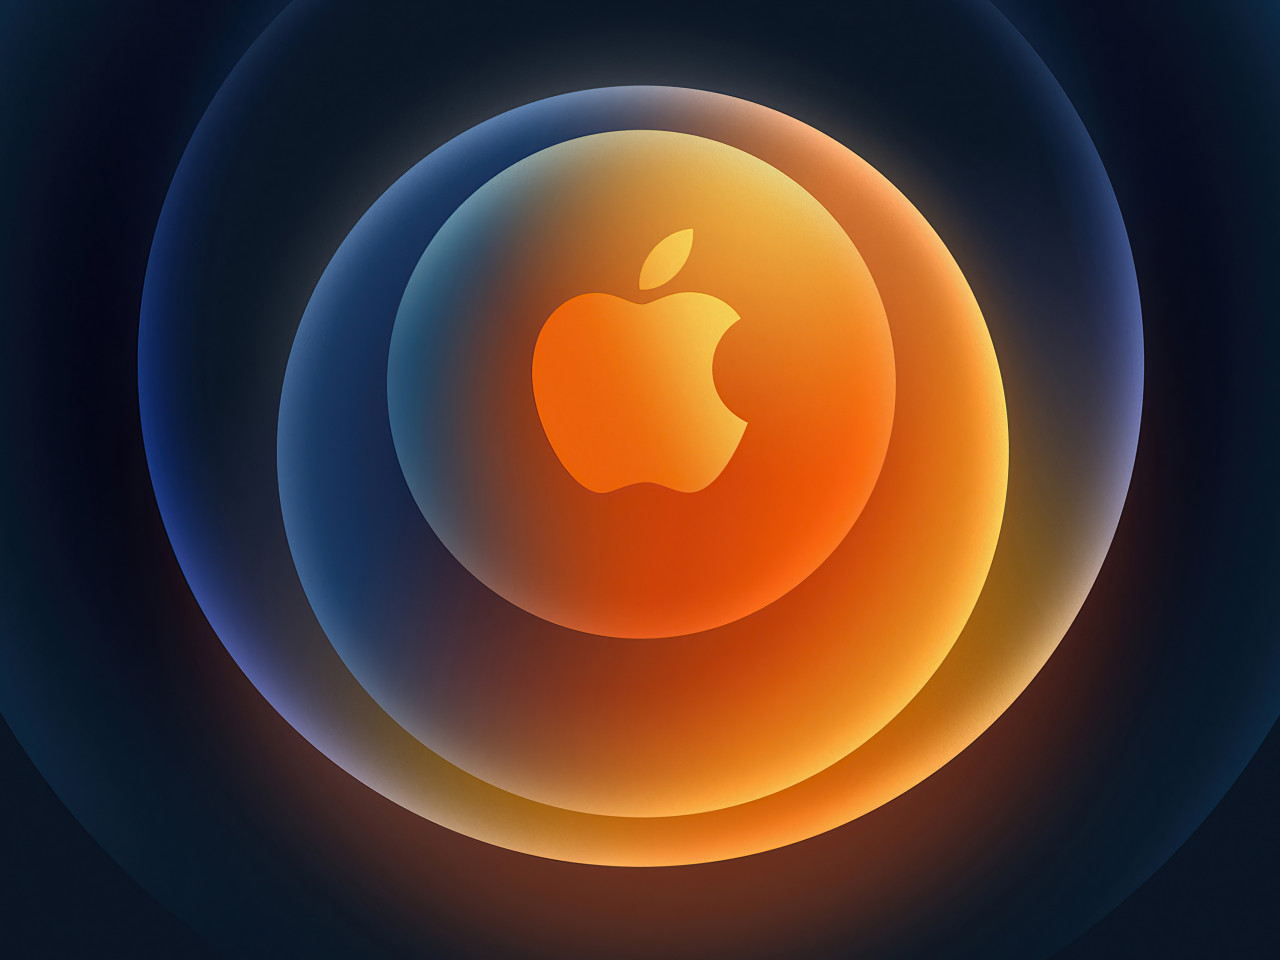 Apple Event wallpaper 1280x960